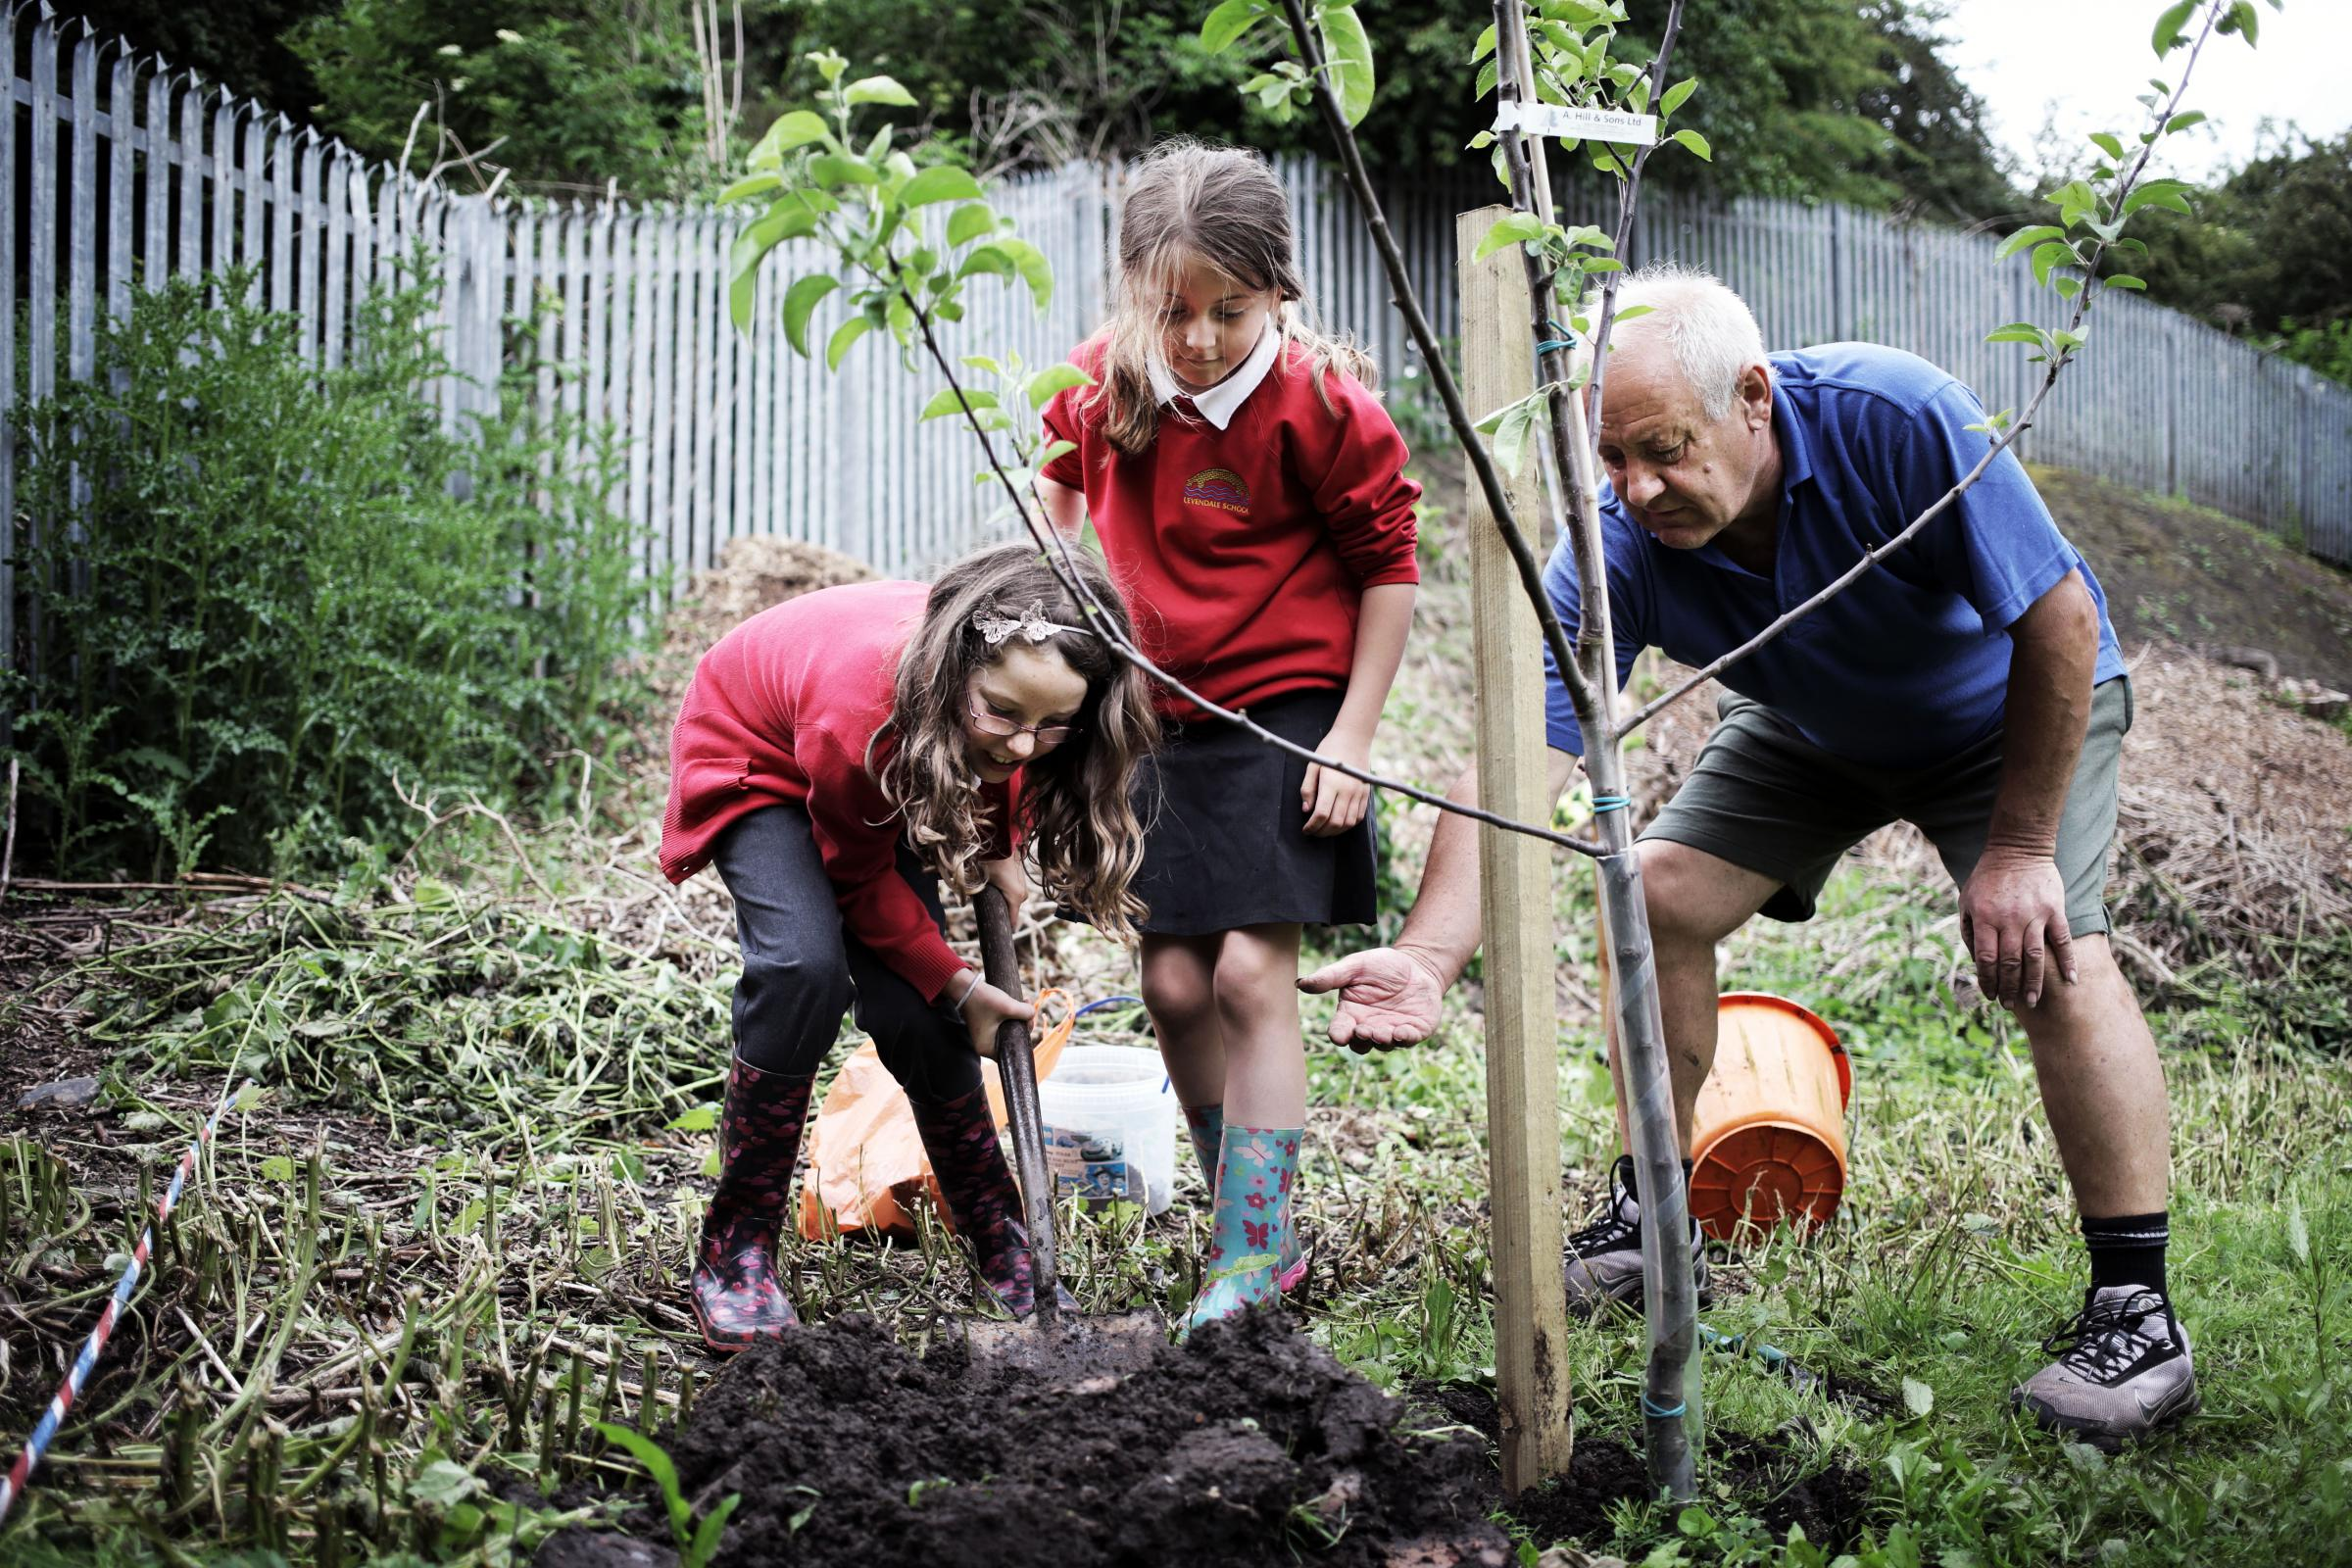 Tree-mendous day for Yarm children